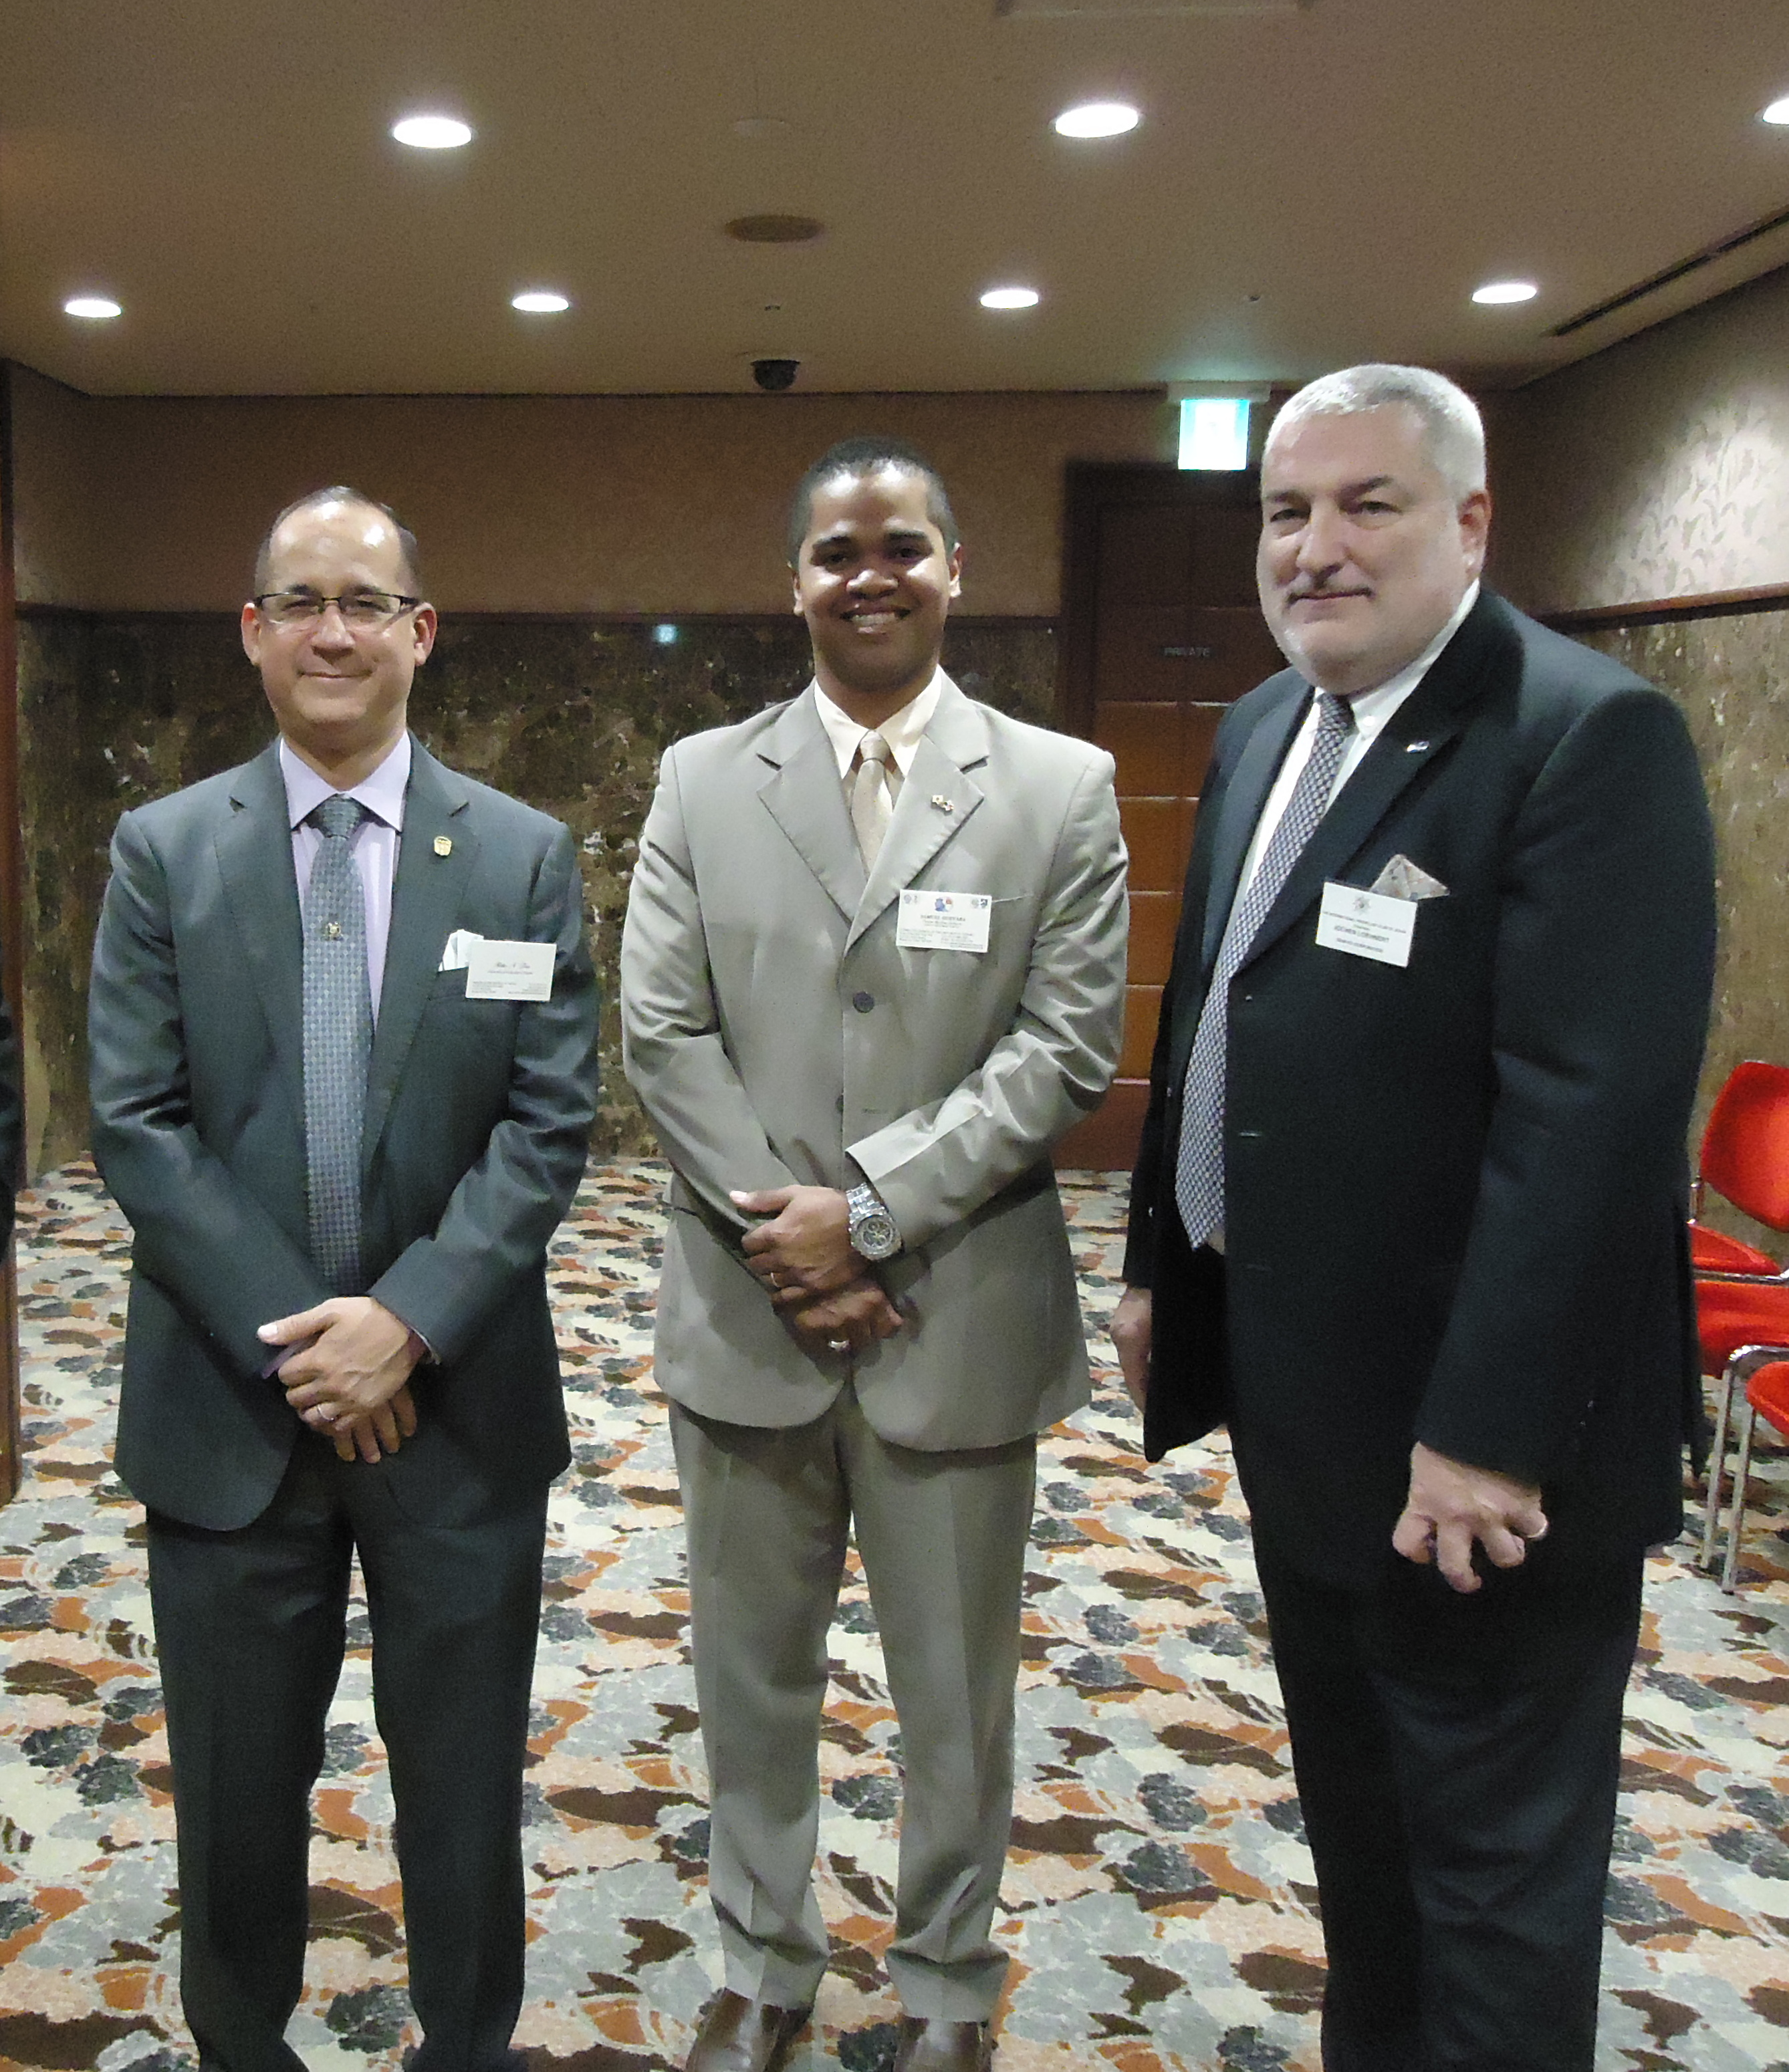 From left to right, H.E. Ritter N. Diaz,  Ambassador and Consul-General of Panama in Tokyo, Mr. Samuel Quevara, Chief of SEGUMAR Office in Tokyo, Mr. Jochen Loehnert, Chairman of the International Propeller Club of Japan